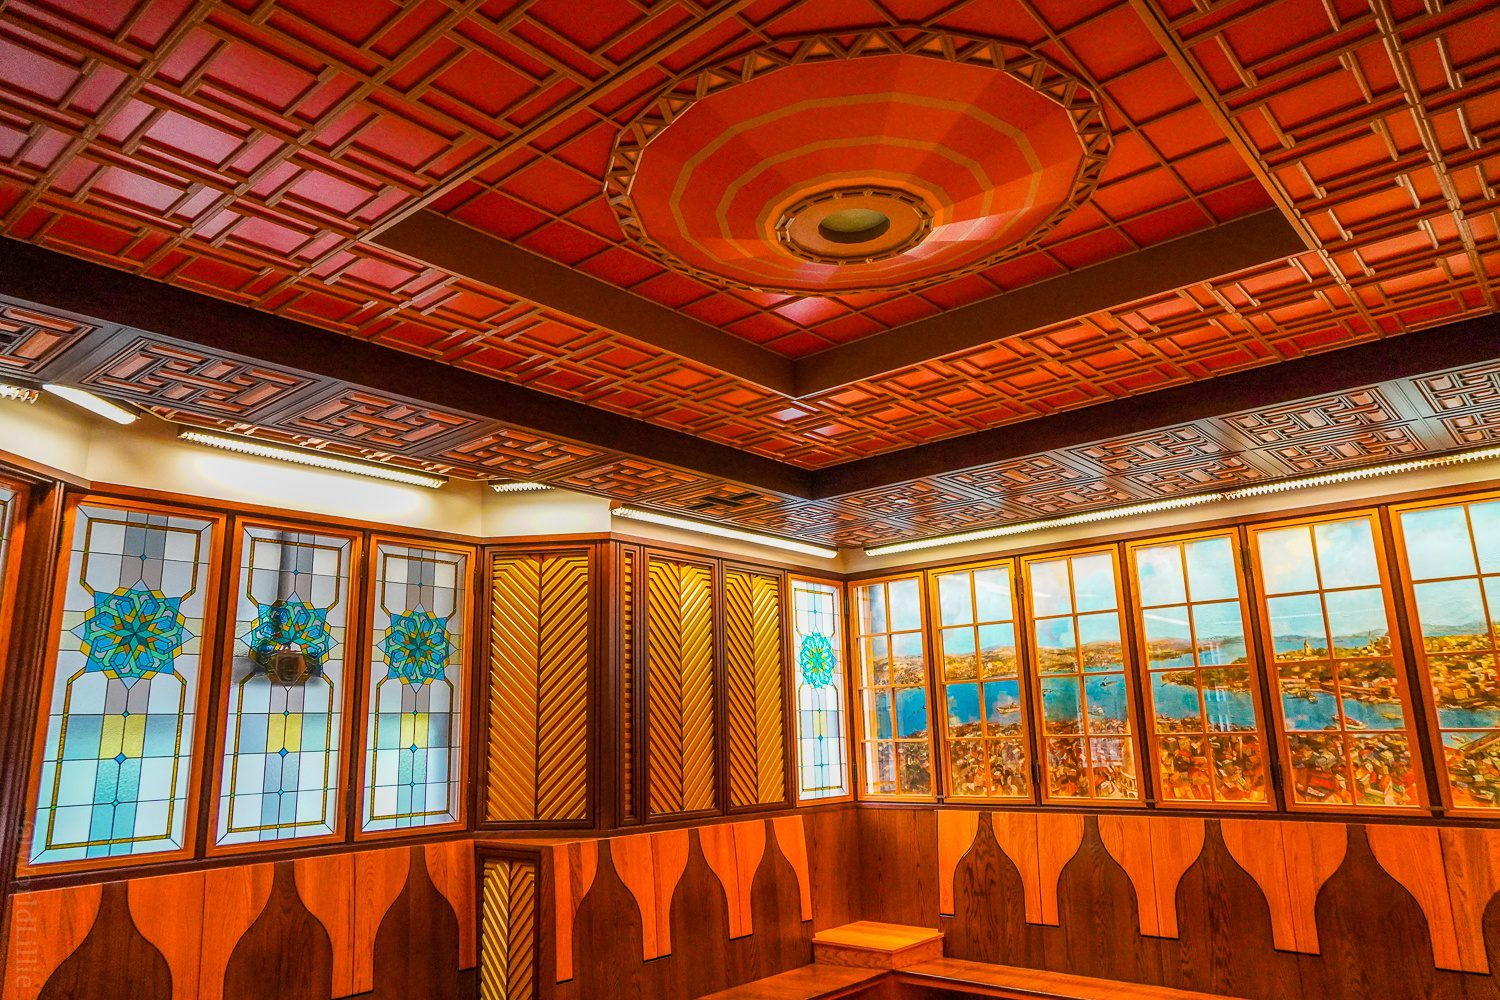 The Turkish Room in the Cathedral of Learning.